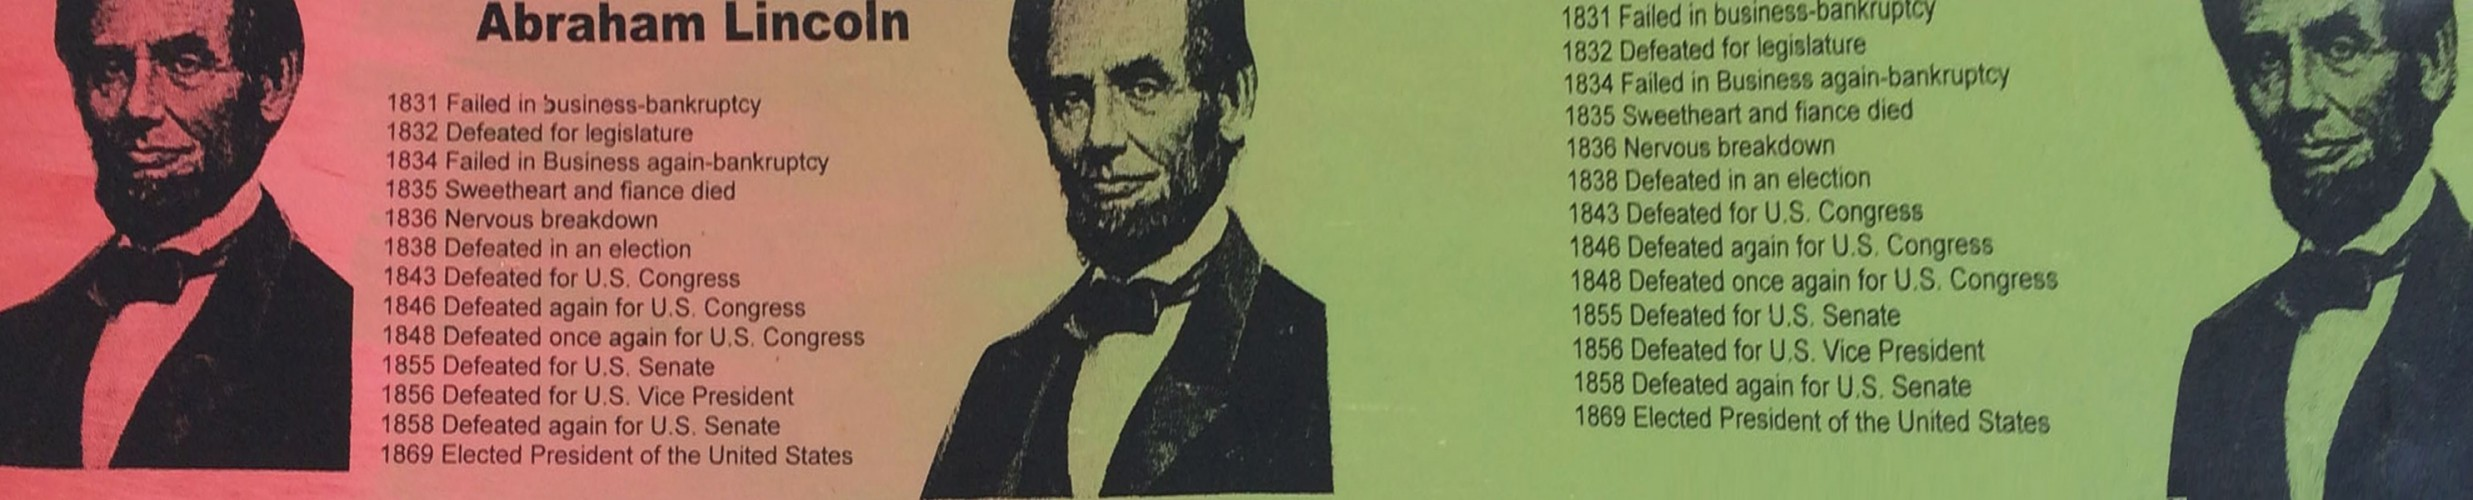 Abe Lincoln Portrait of an Achiever - PP